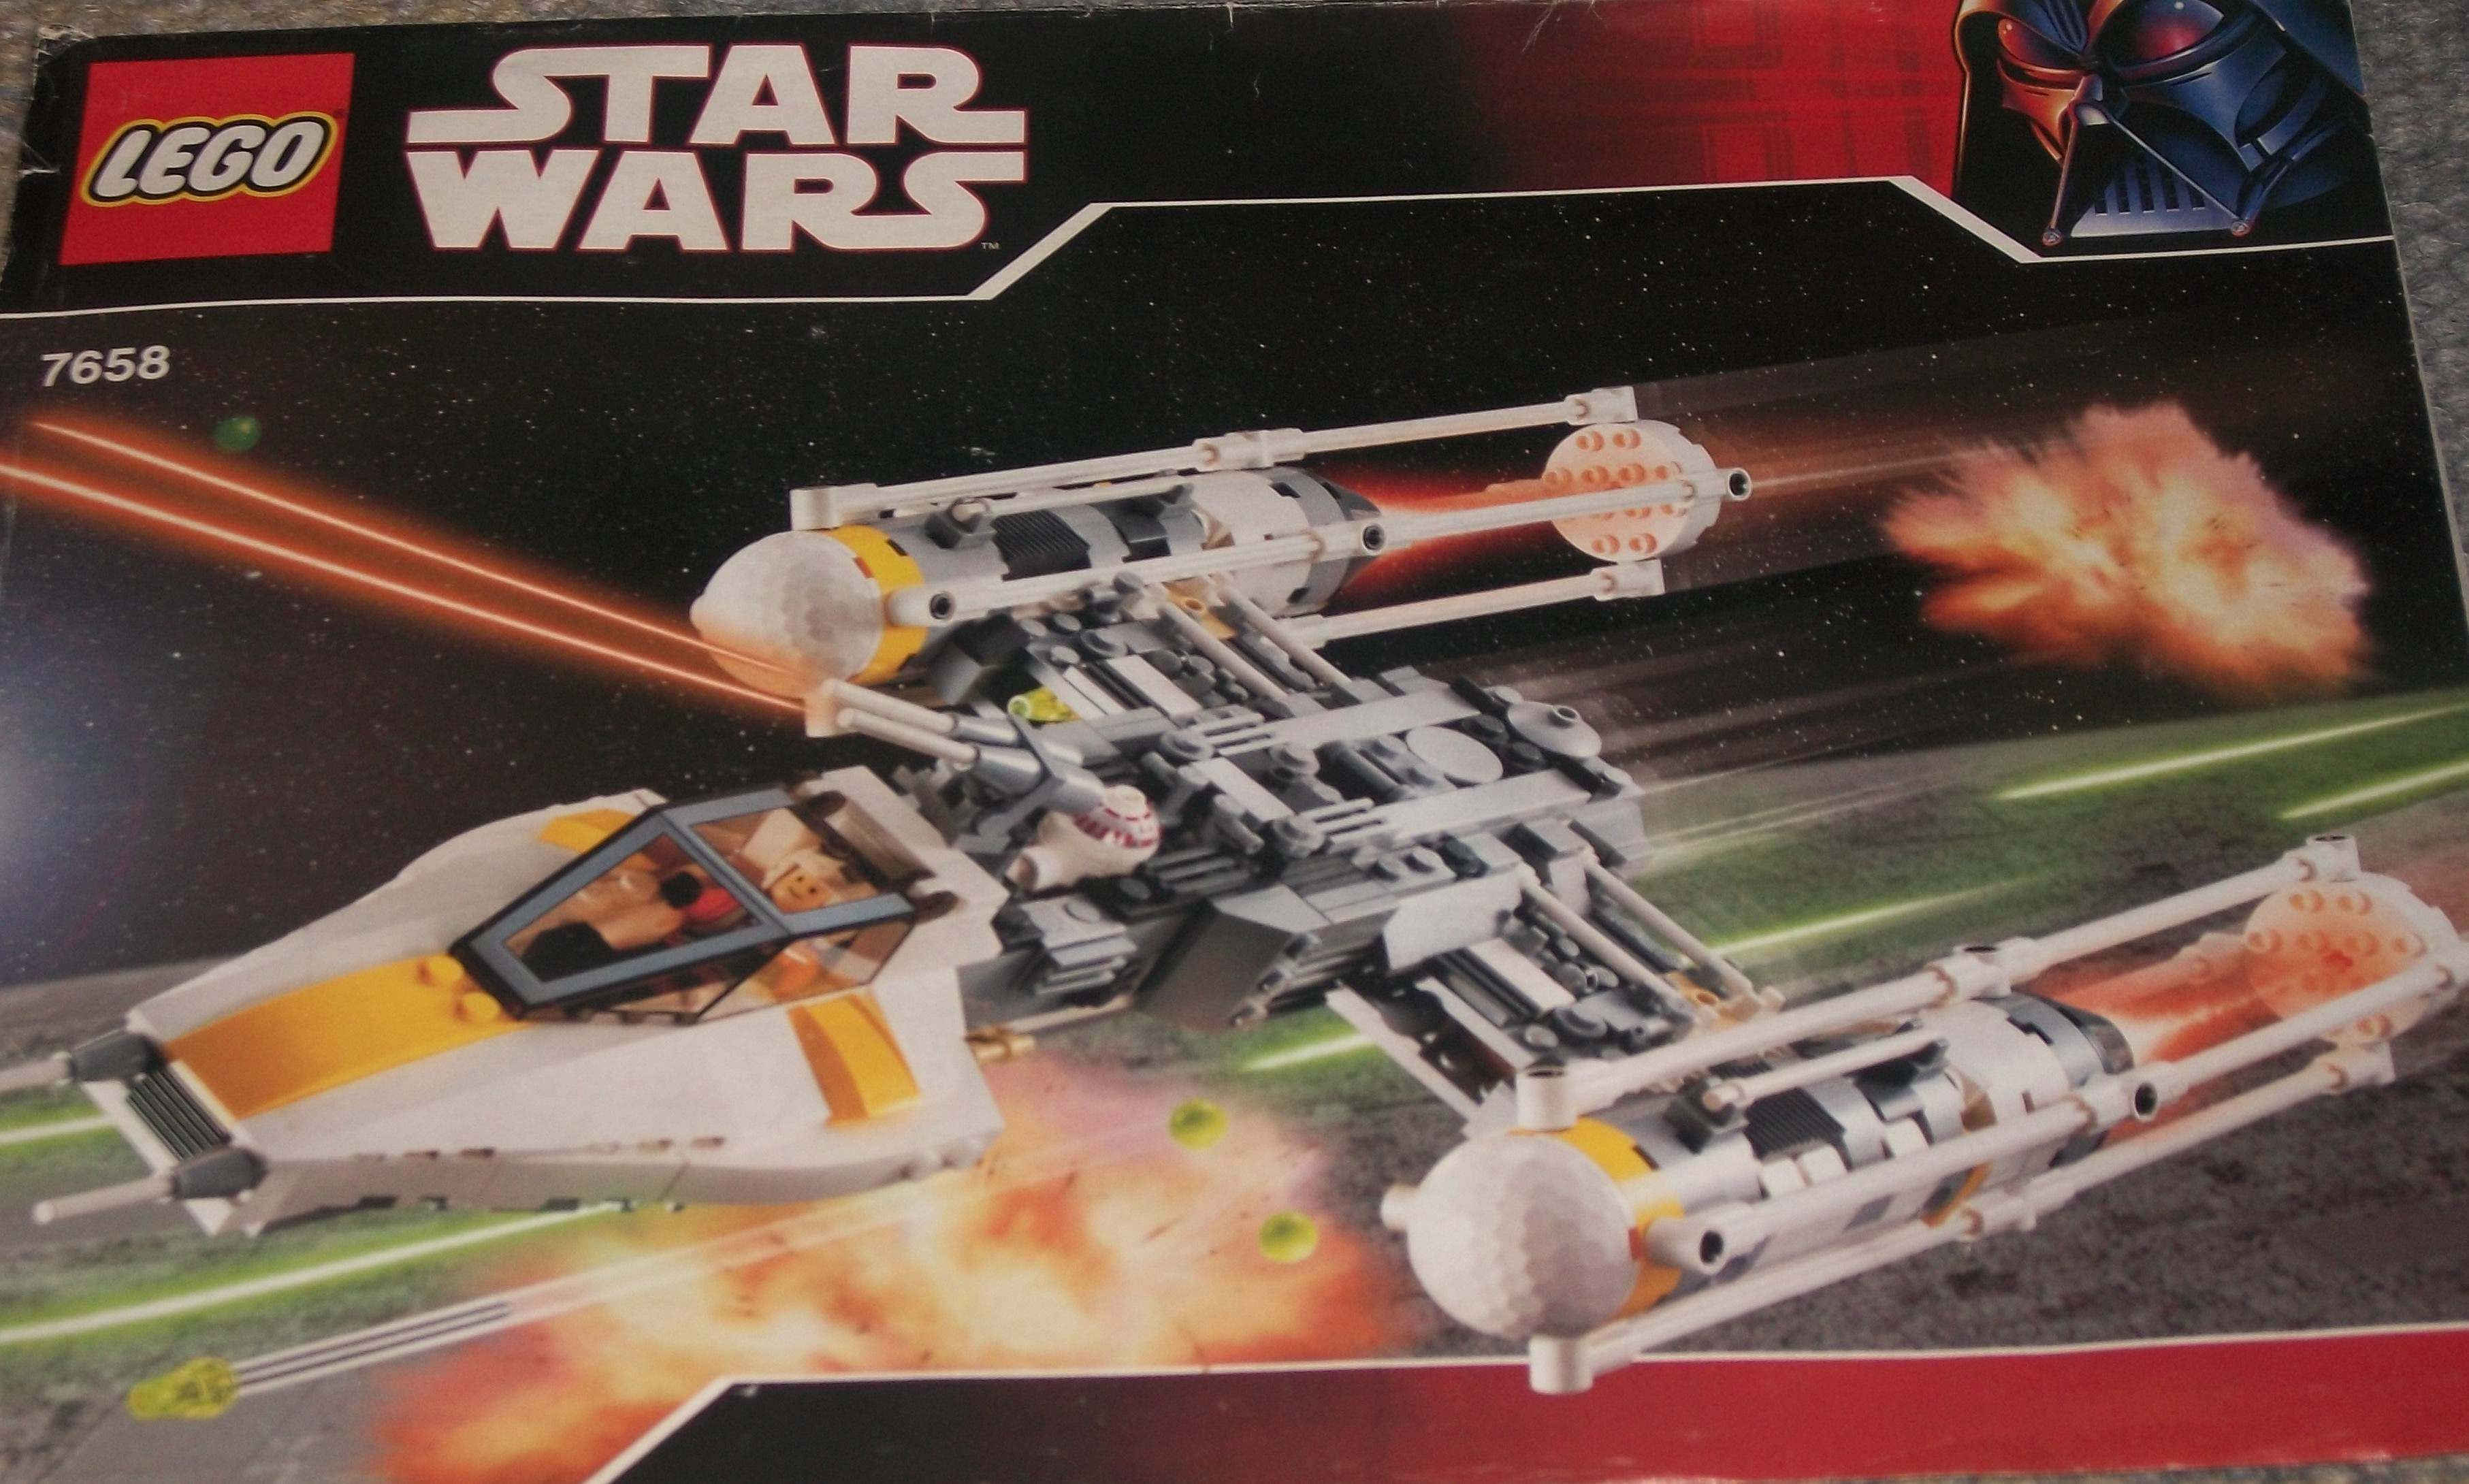 Star Wars LEGO real time build set 7658